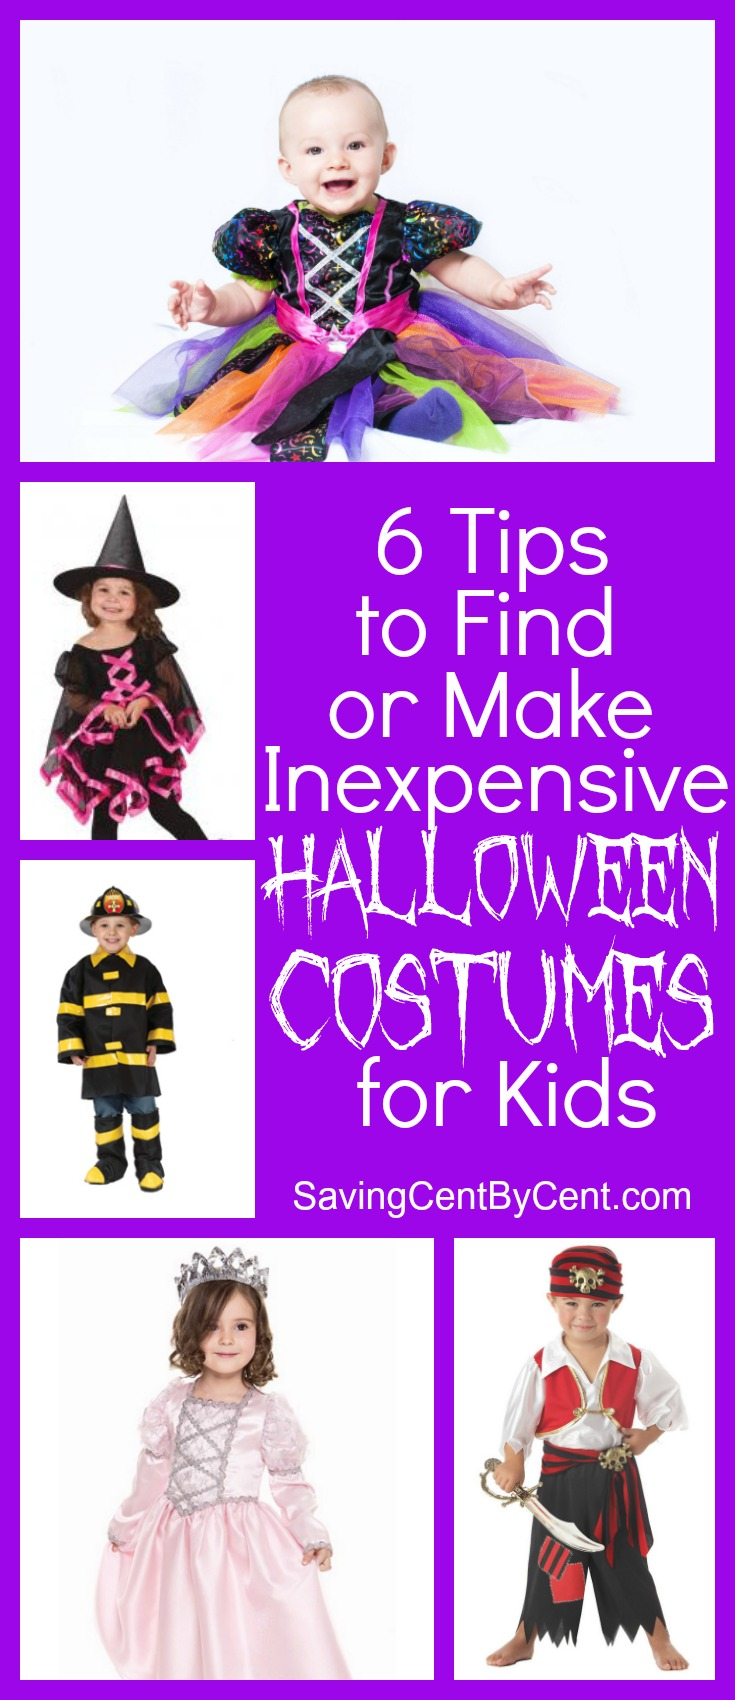 6 Tips to Find or Make Inexpensive Halloween Costumes for Kids